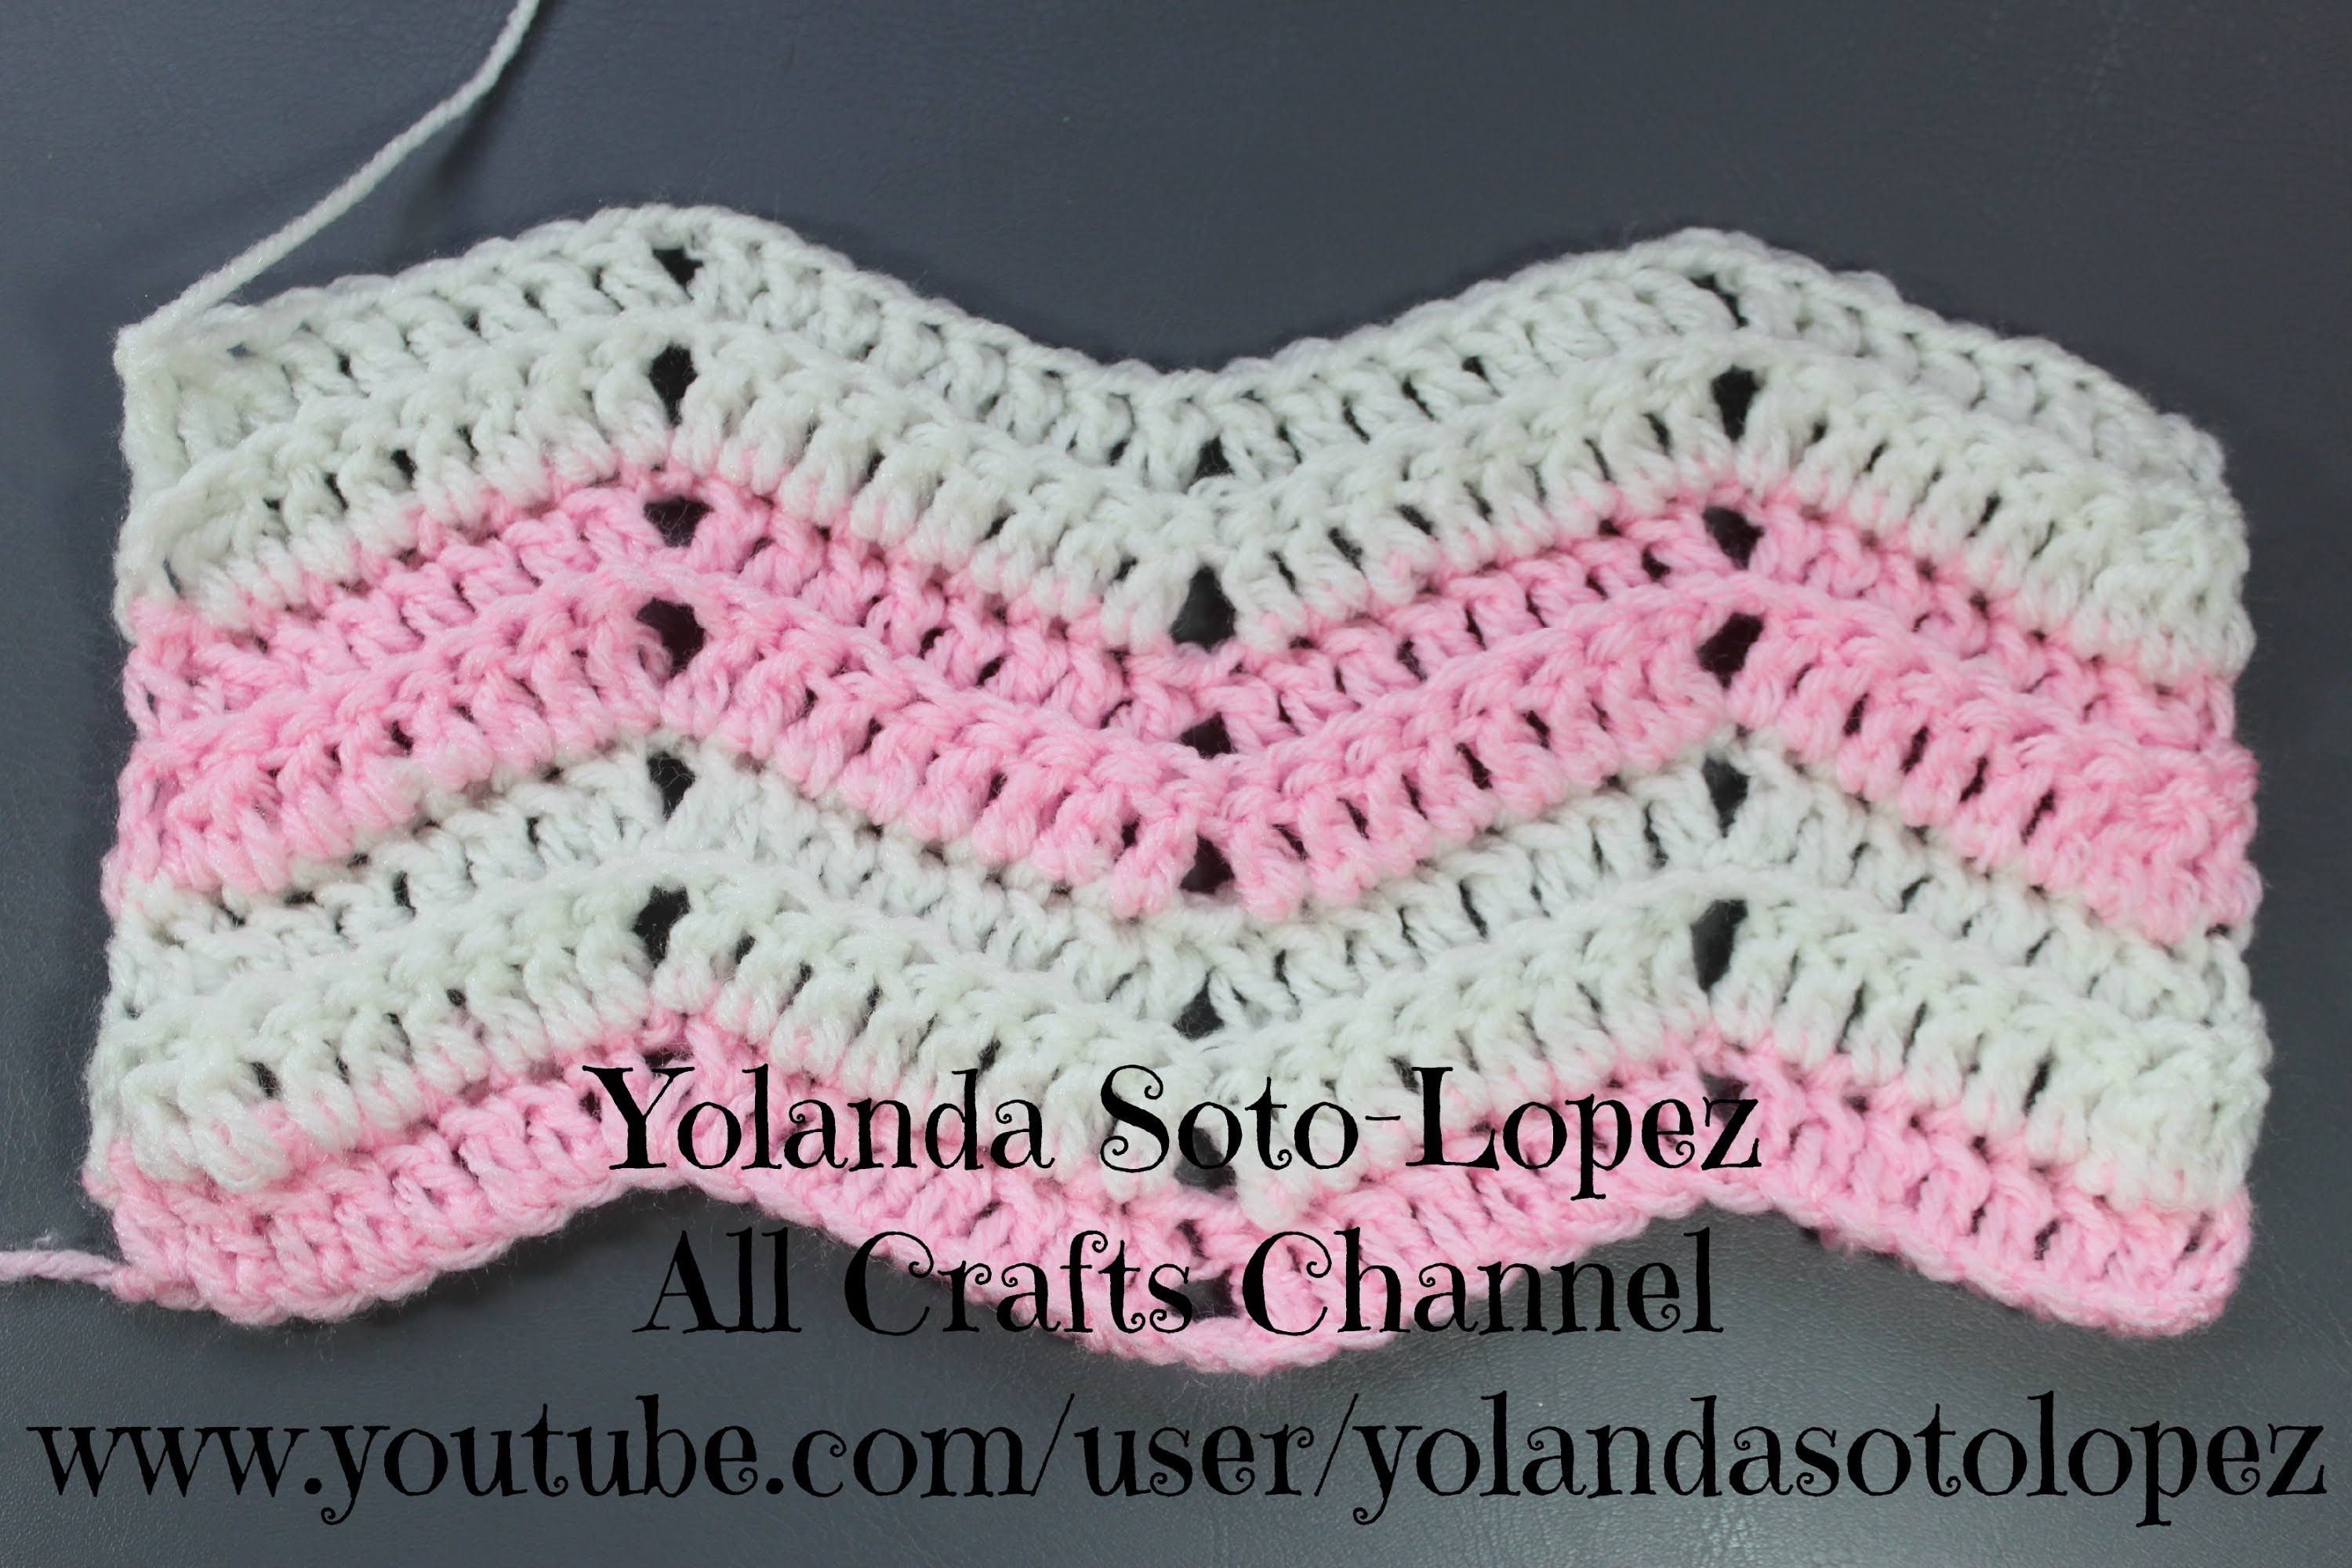 ripple crochet pattern how to crochet ripple stitch - youtube blkkzrq